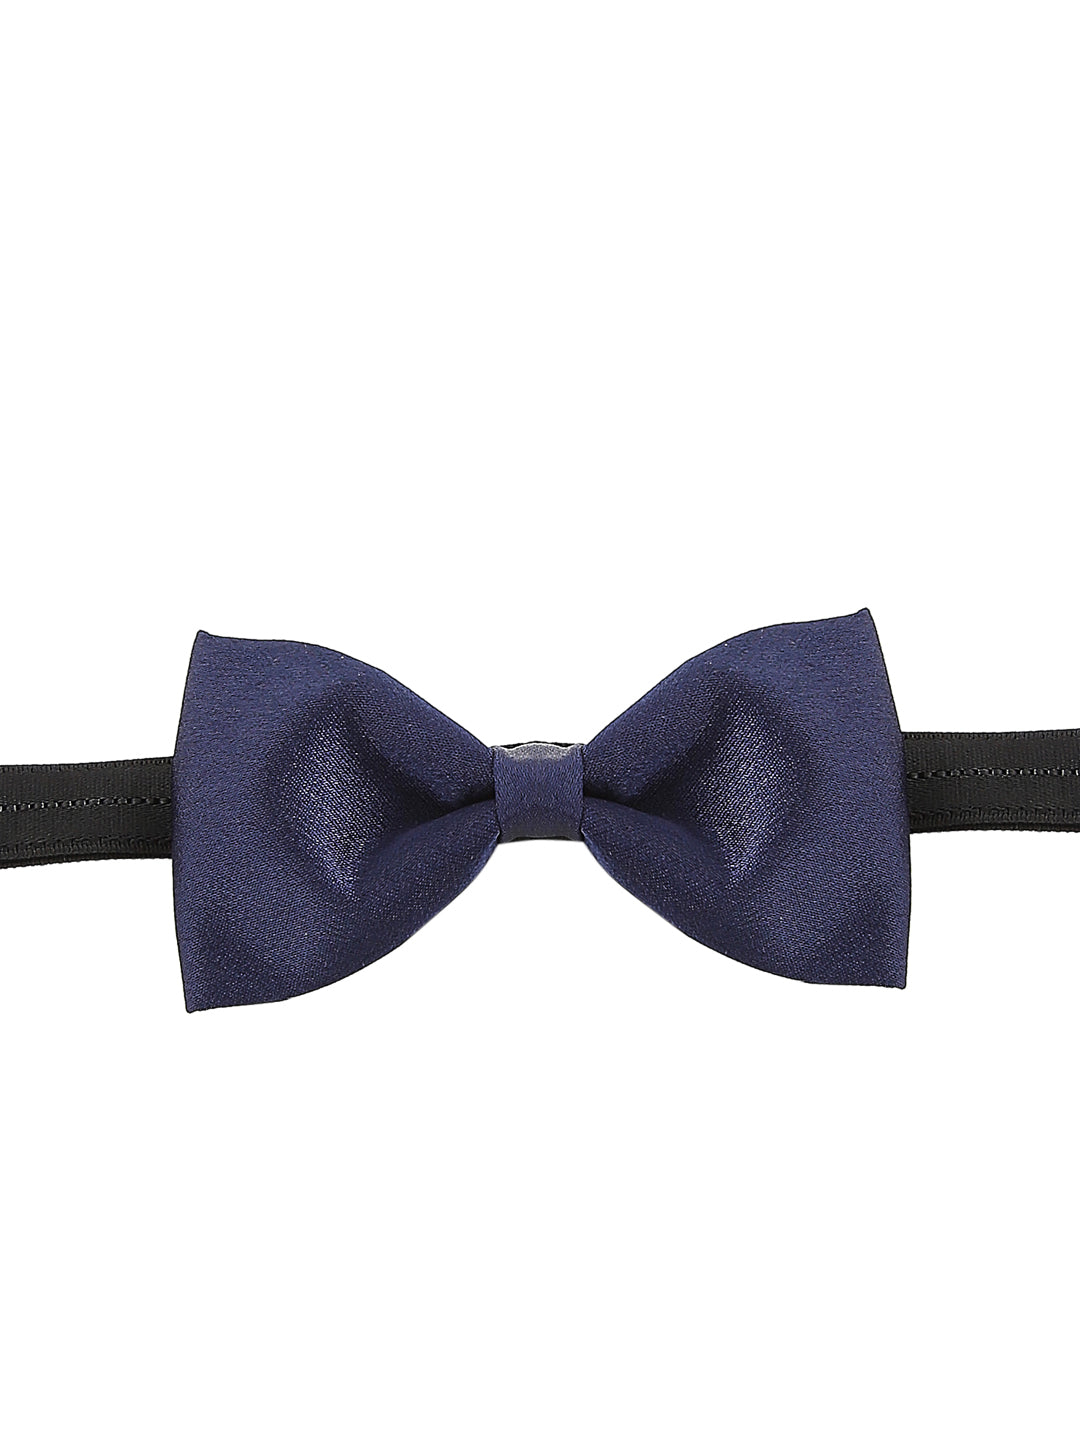 ZIDO Bow Tie for Men BPL002